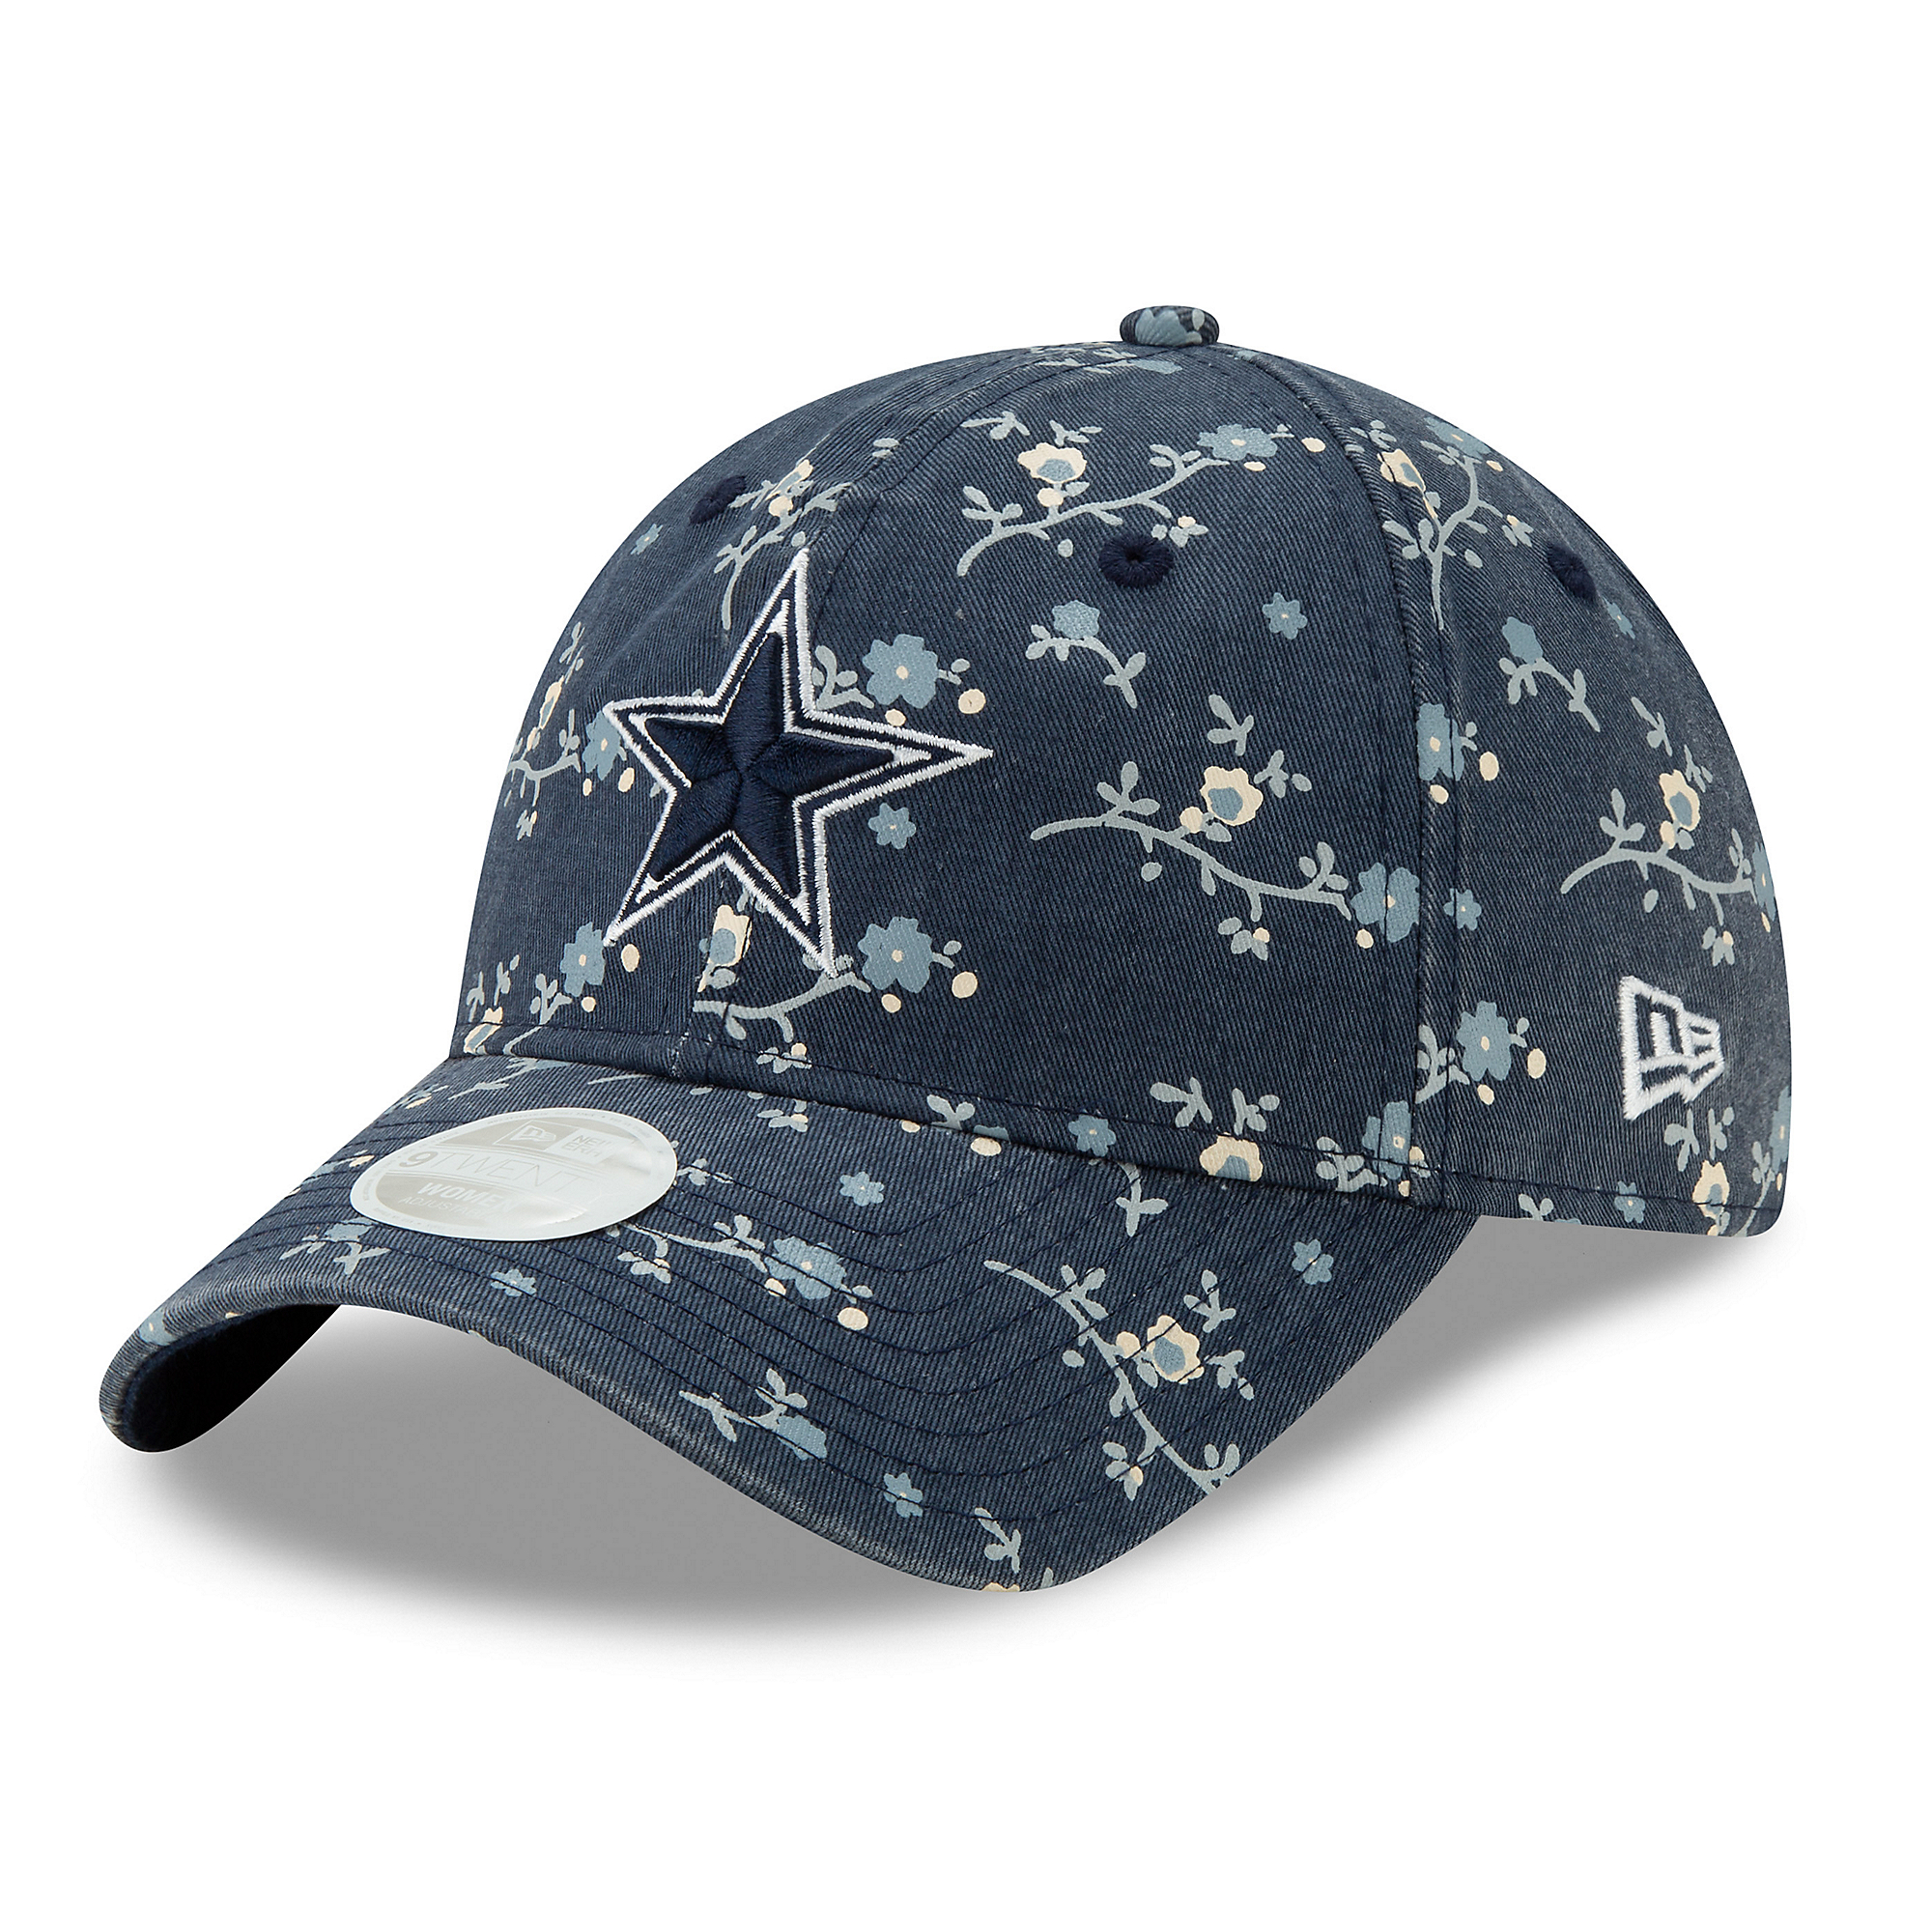 Dallas Cowboys New Era Womens Blossom 9Twenty Cap